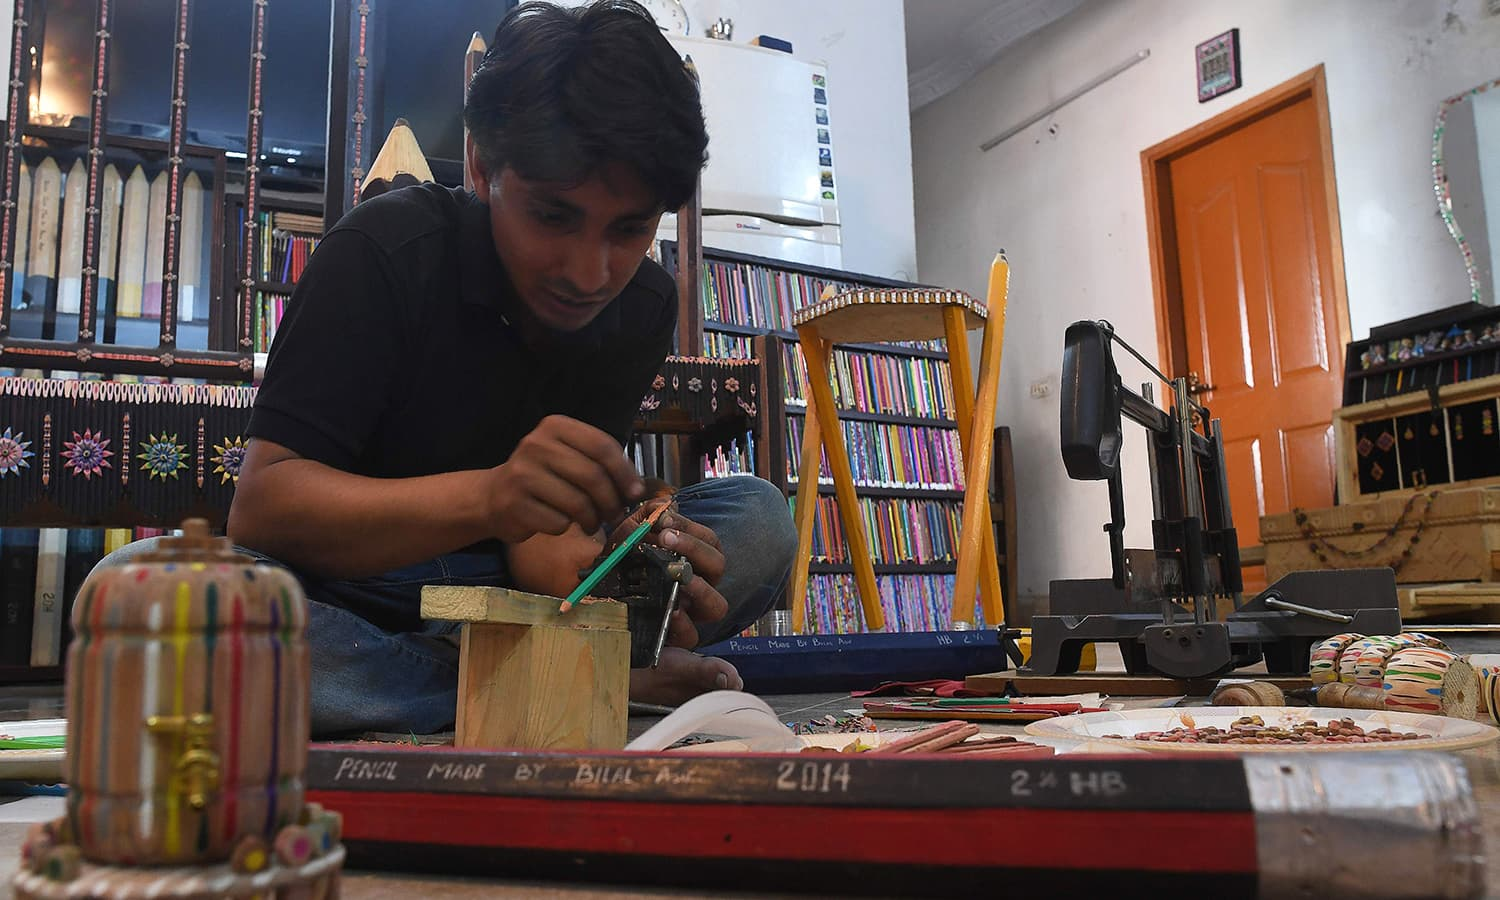 Bilal Asif works on his pencils artwork at his studio. — AFP